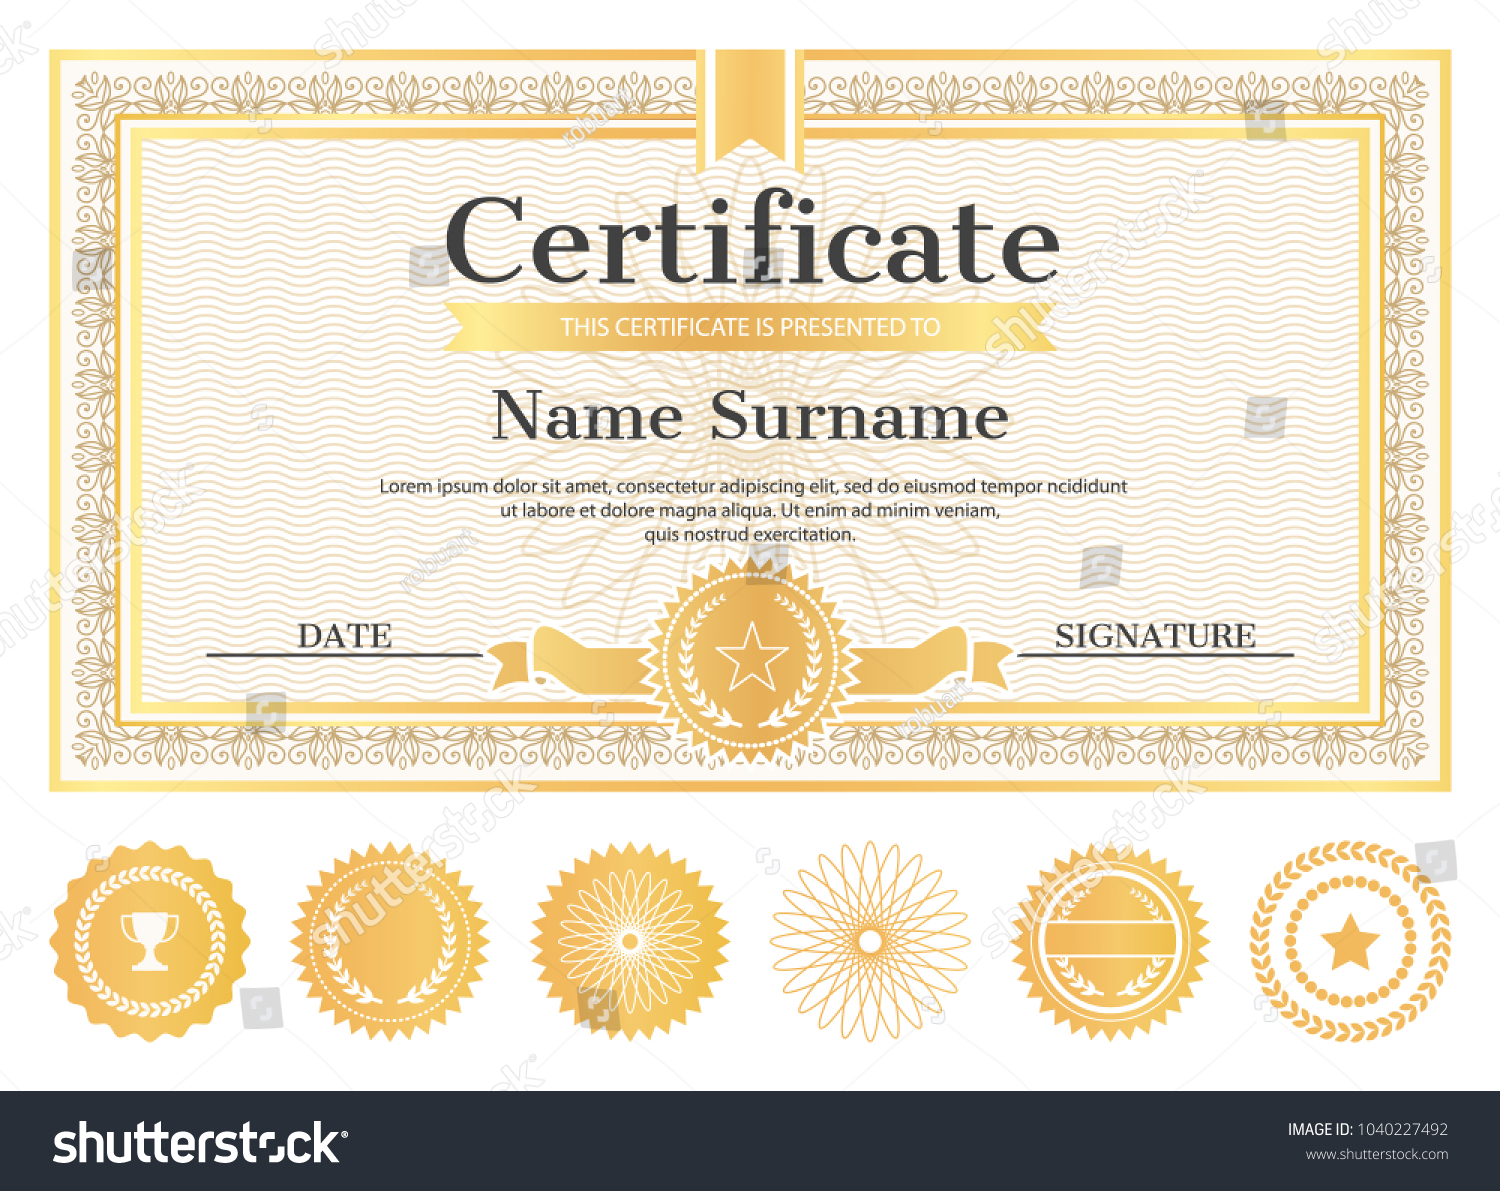 Certificate sample place name surname date stock photo photo certificate sample with place for name and surname date and signature template of certificate yelopaper Gallery